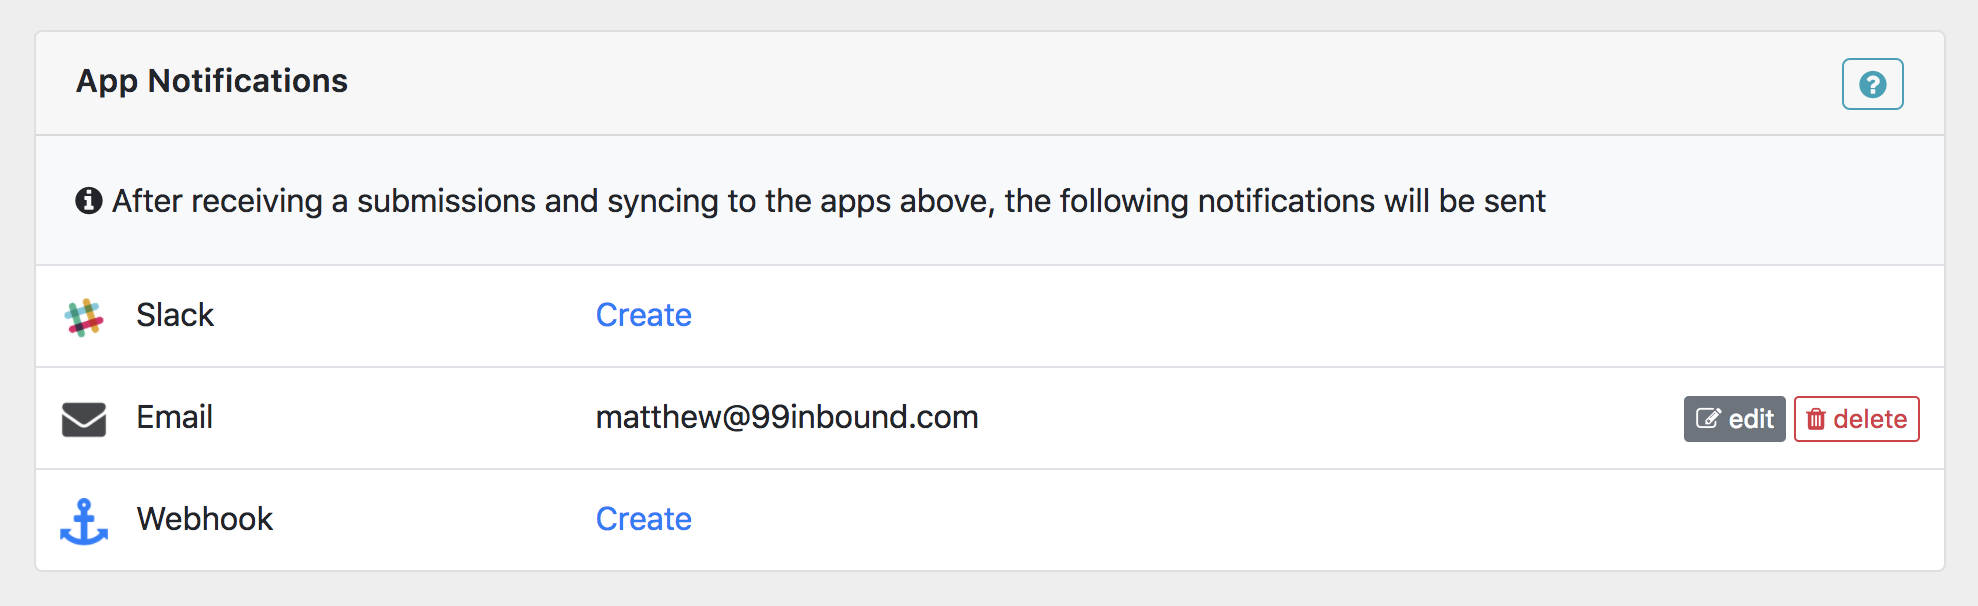 Form Notifications